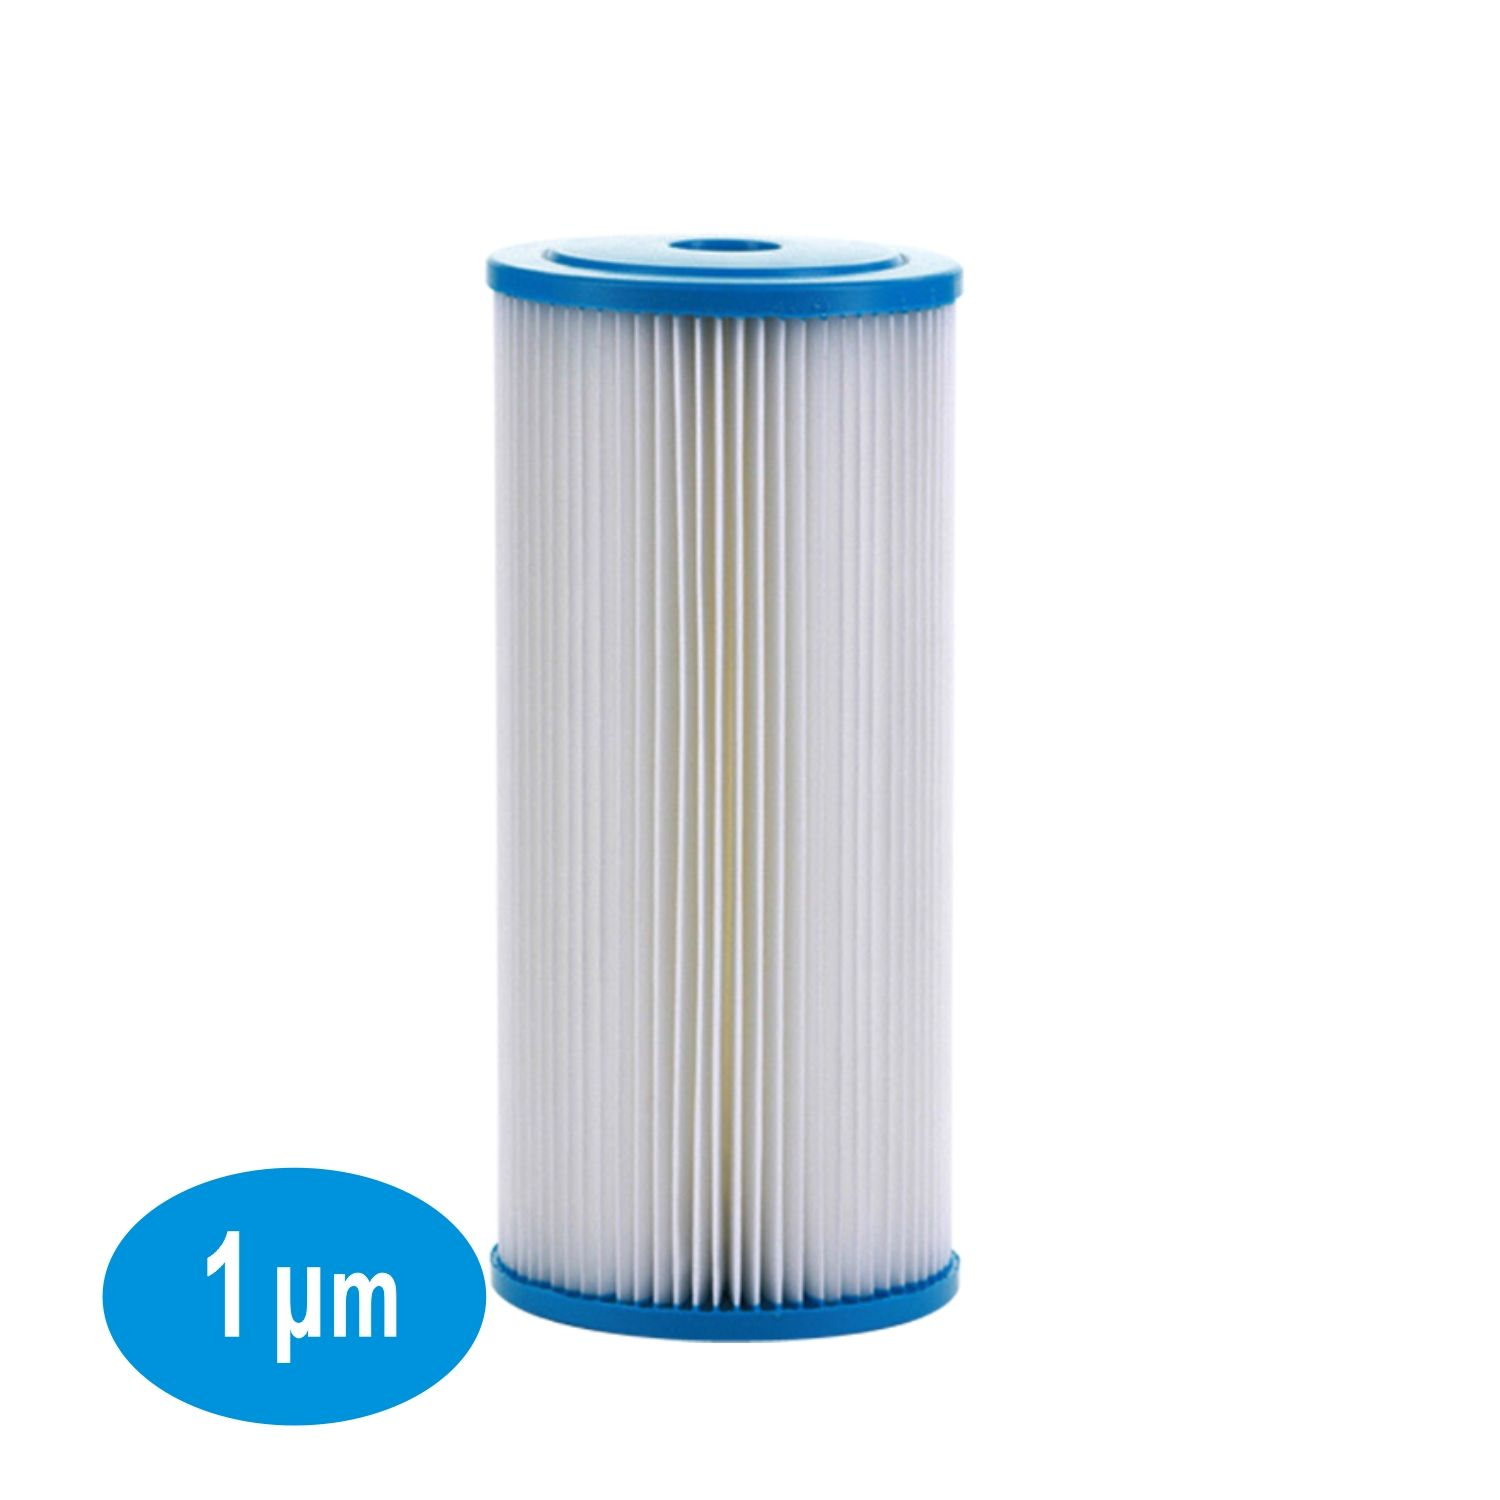 1 Micron Big Blue Sediment Pleated Water Filter 4 5 Dia X 10 Long Whole House Washable And Reusable In 2020 Water Filter Filters Sediment